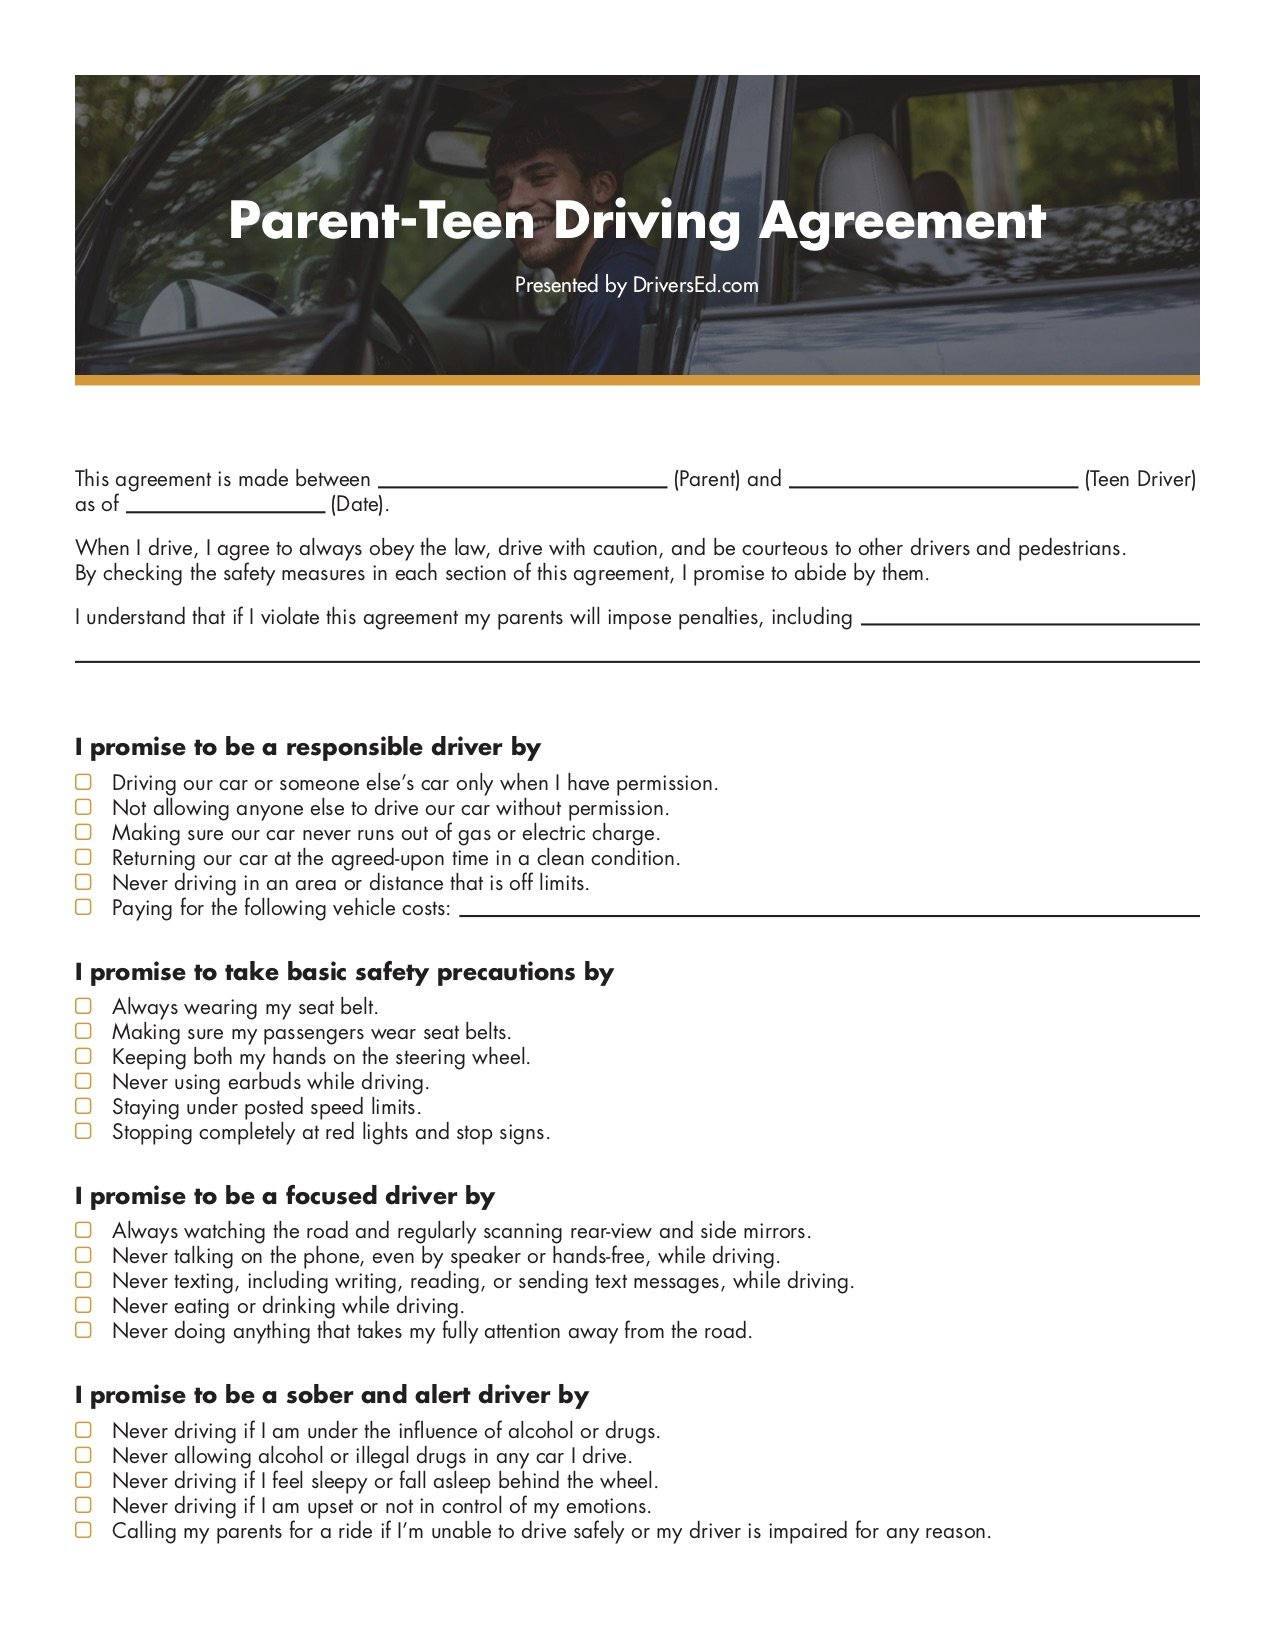 DriversEd.com Parent-Teen Driving Contract